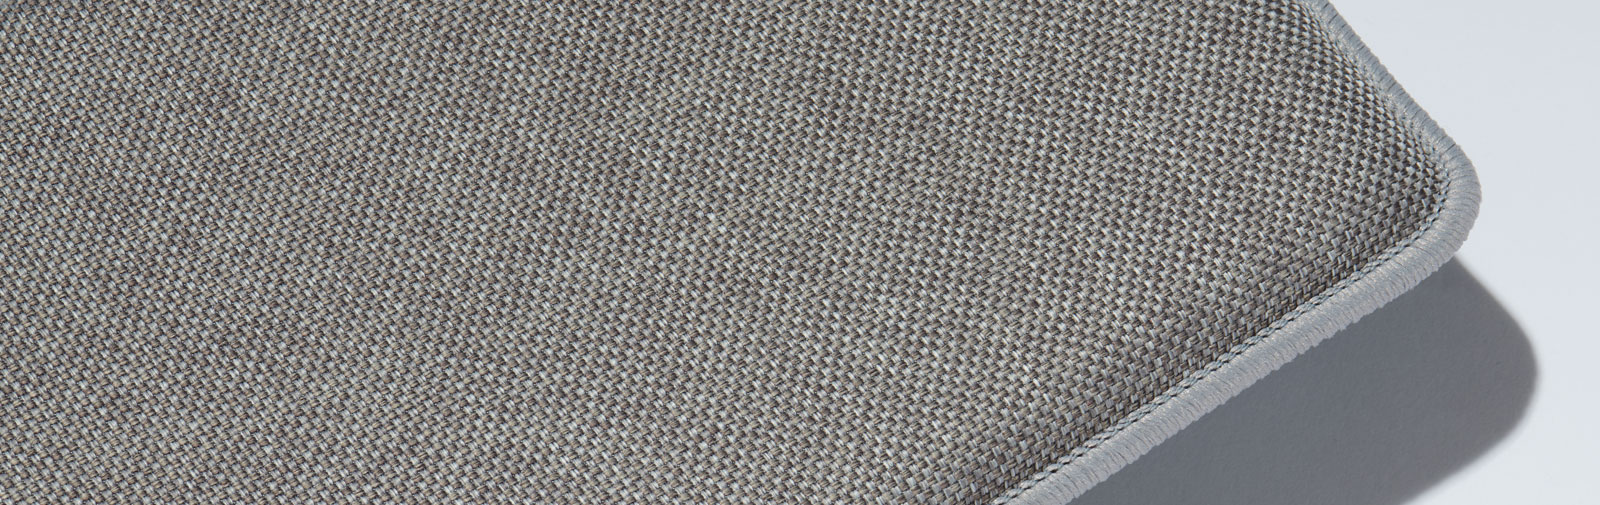 Pattern Cushion Pew Runner Bankauflage Verano Color code 683 Color grey